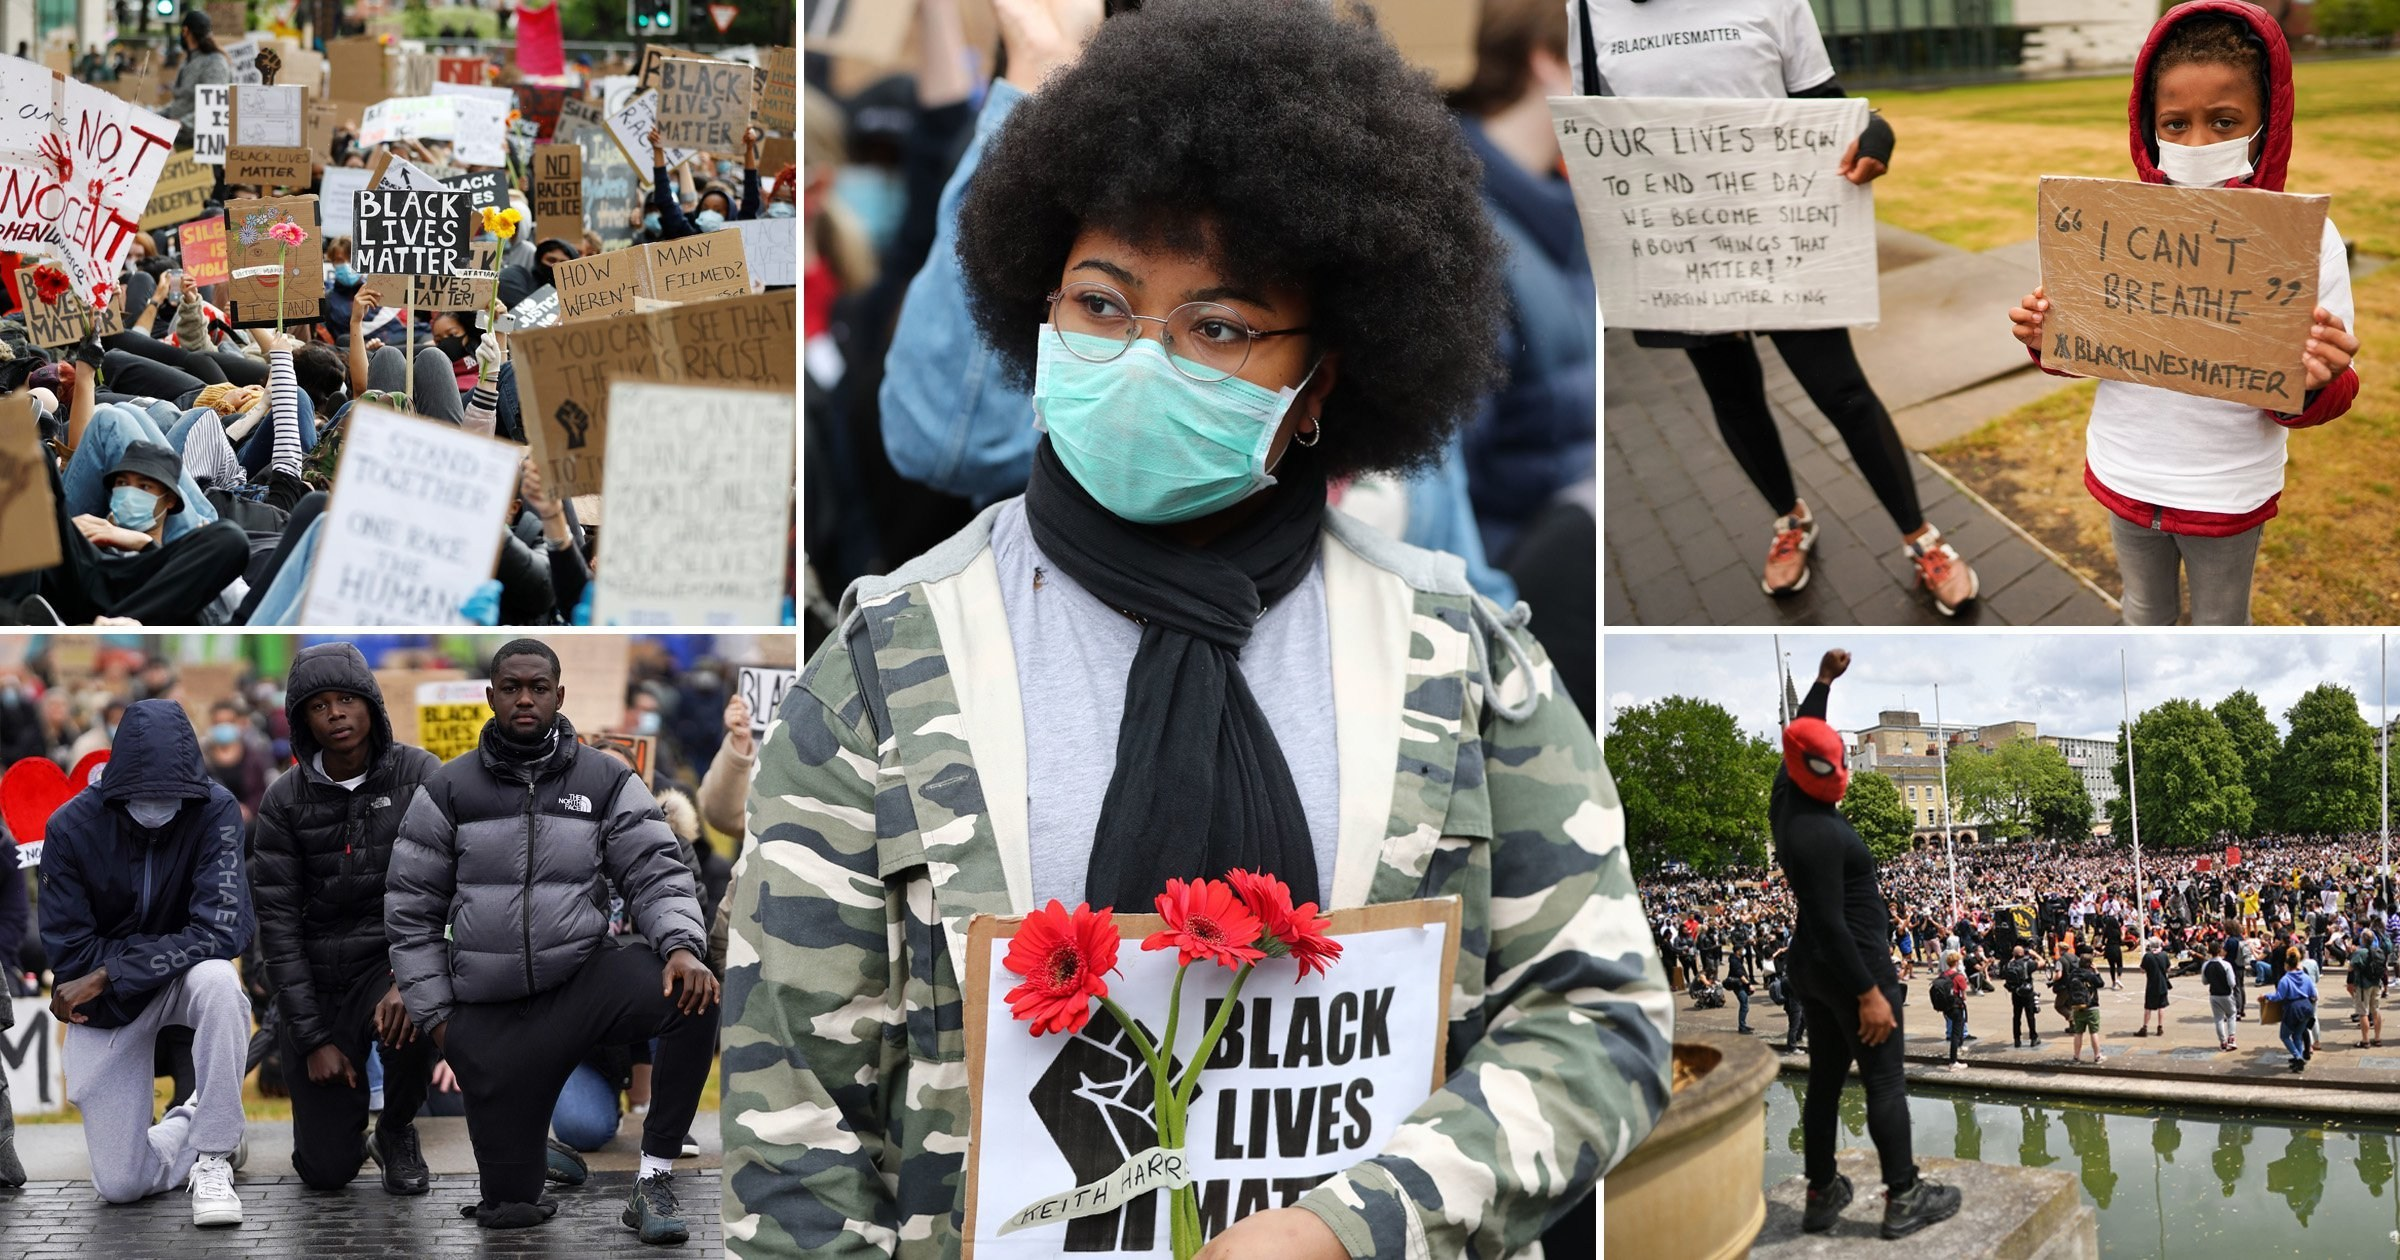 Thousands take to UK streets calling for an end to racism